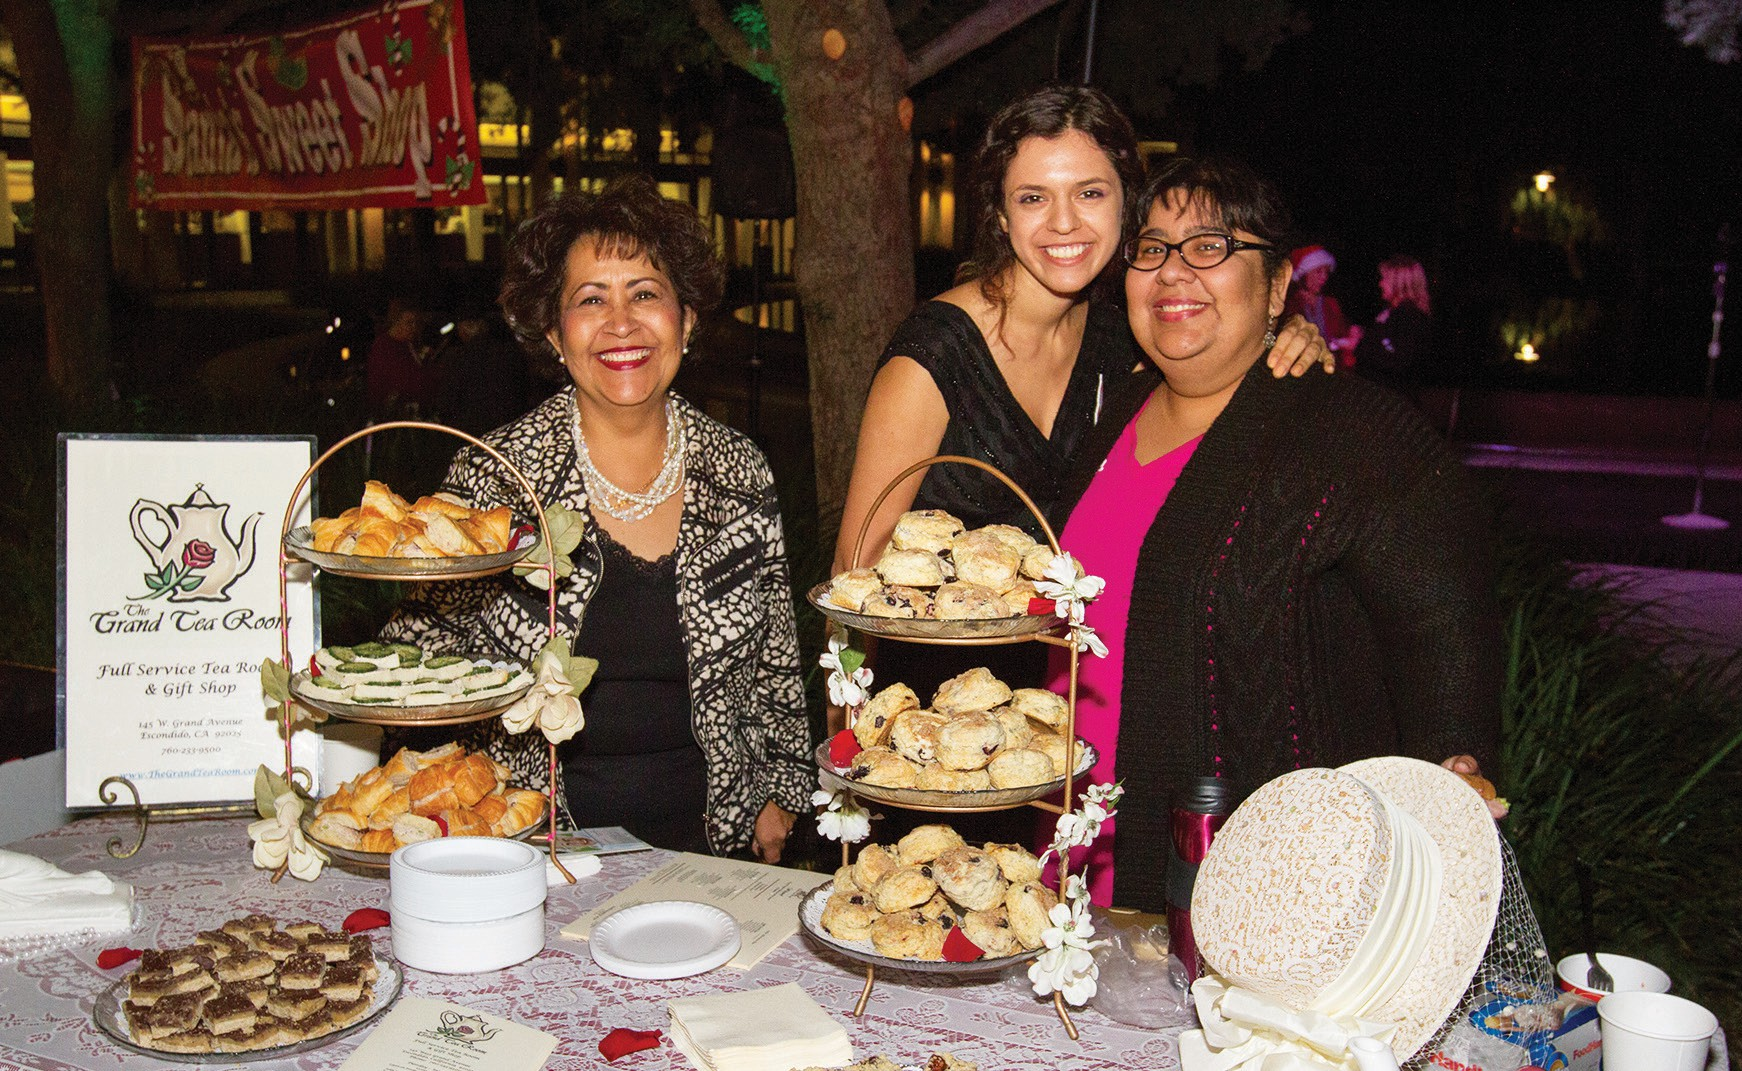 The Grand Tea Room will be one of the vendors offering sweets.